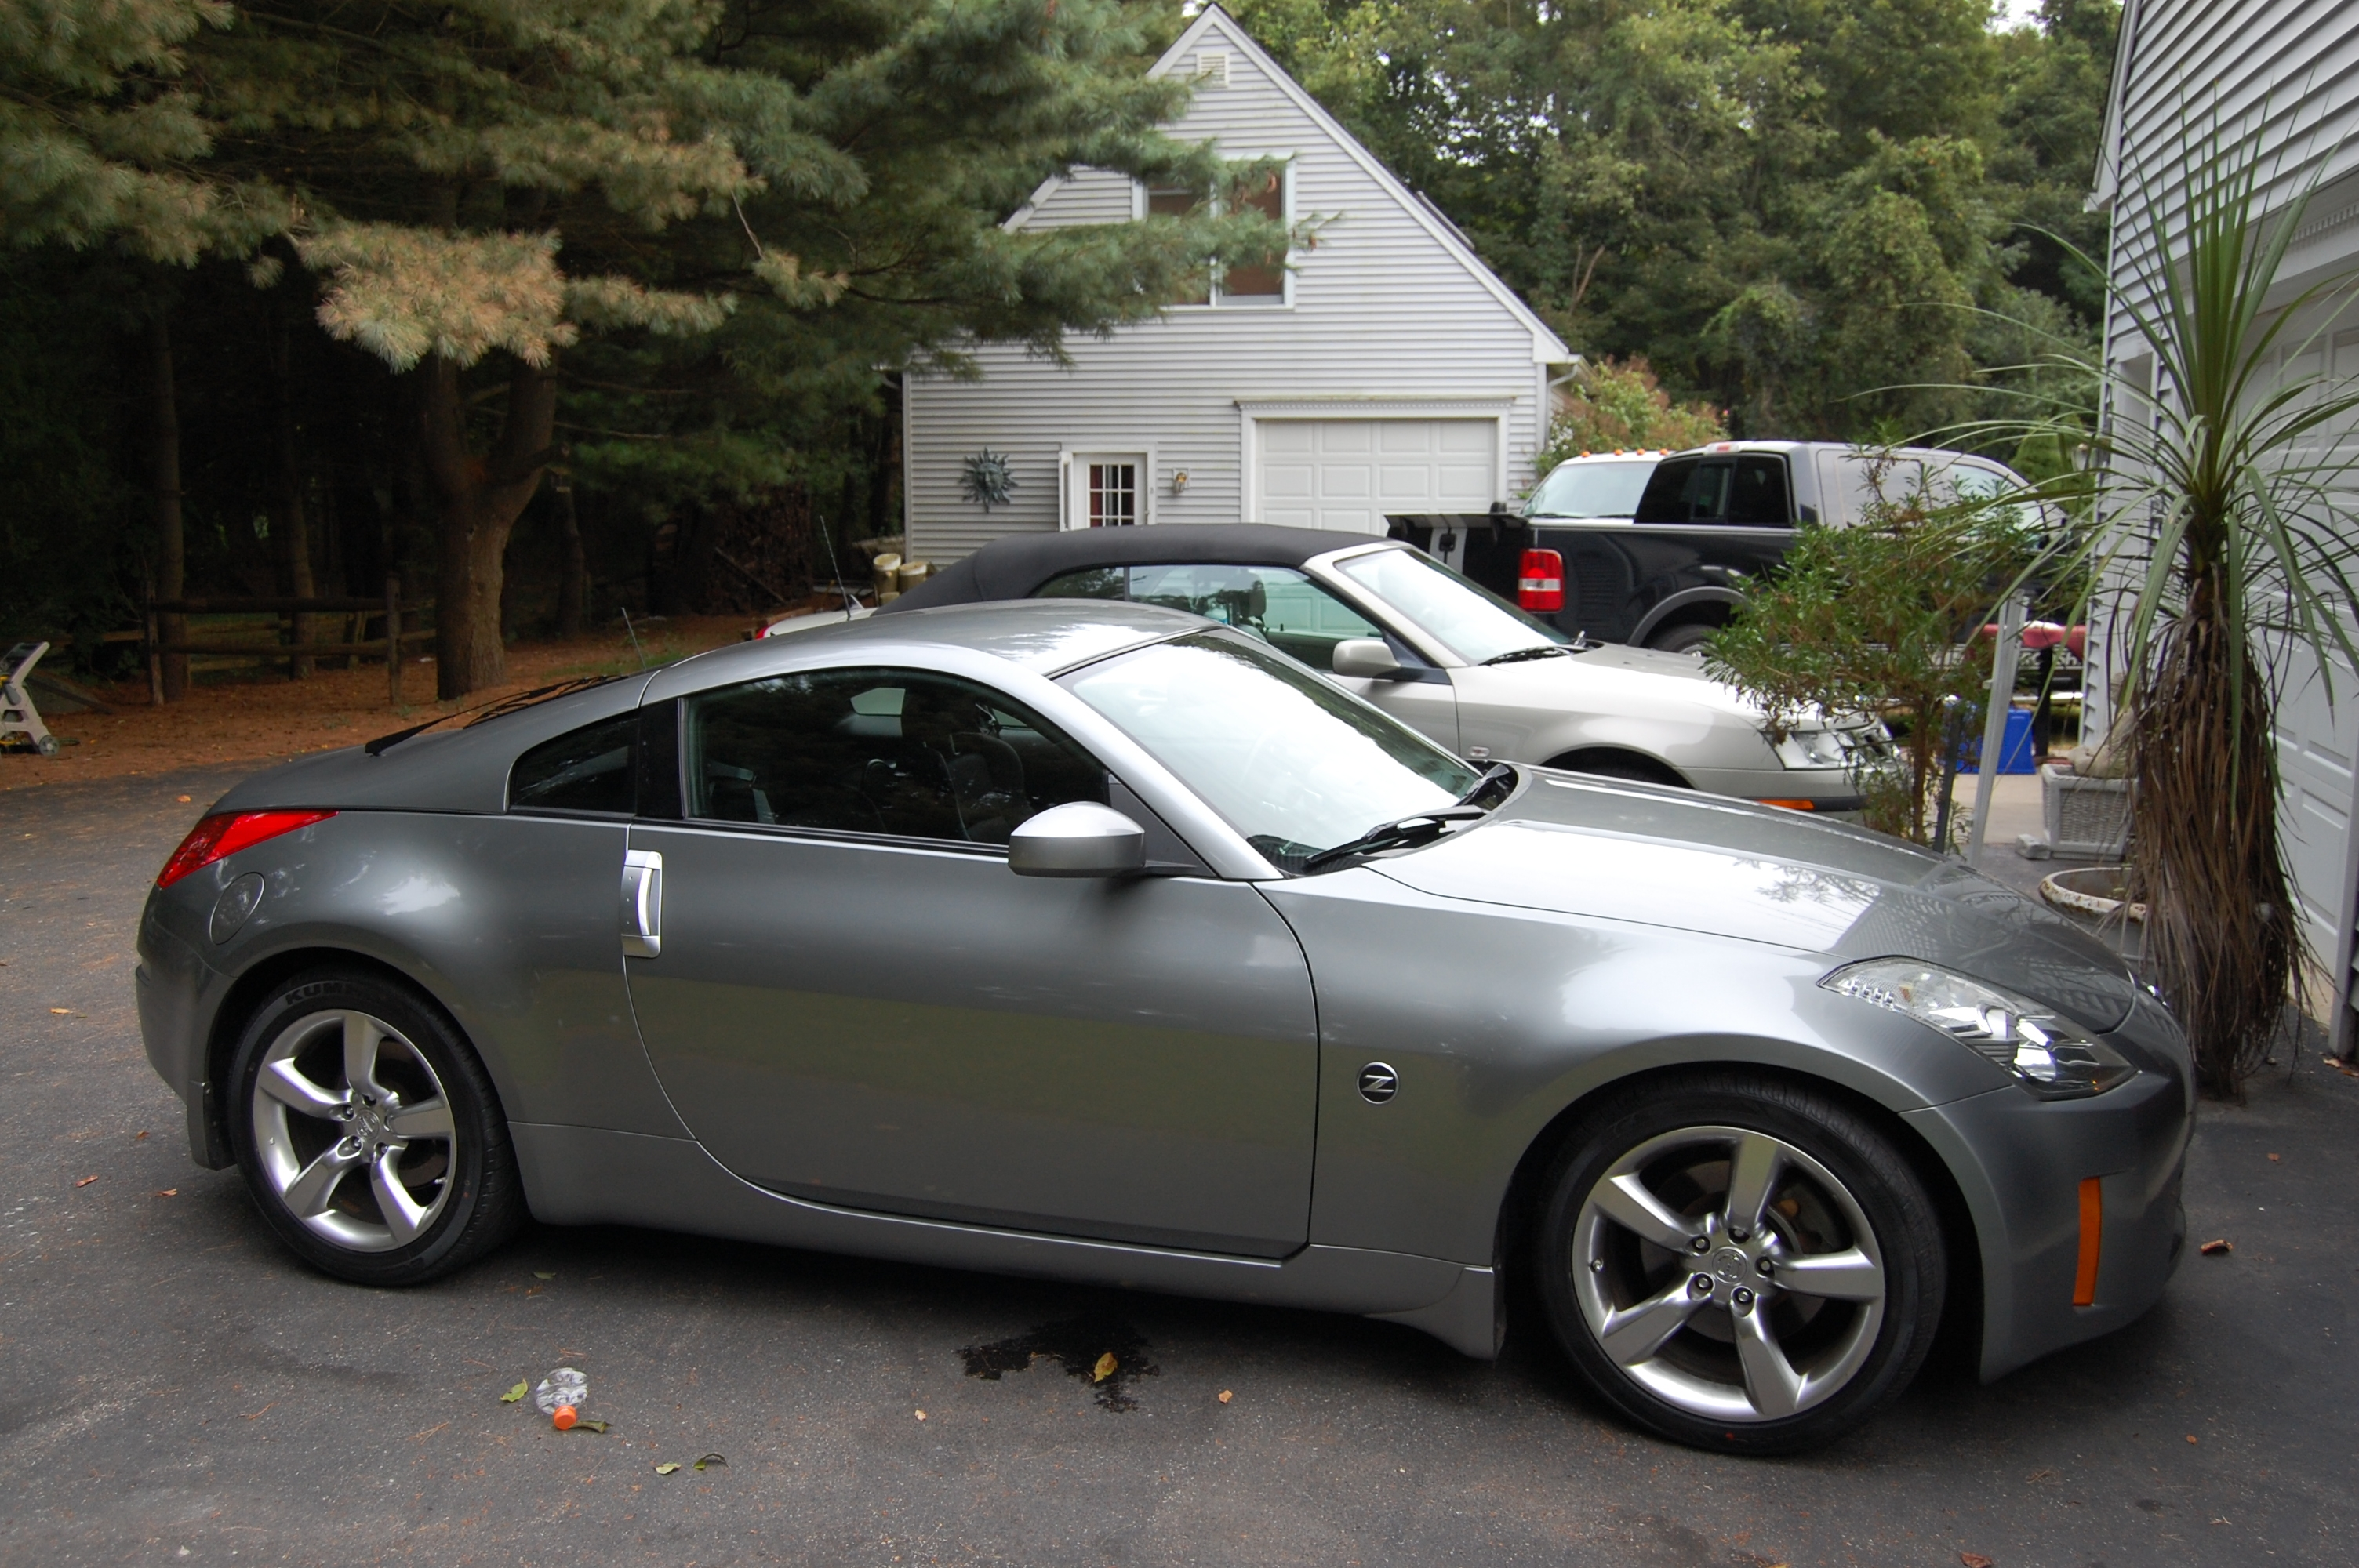 xrx zero 2006 nissan 350z specs photos modification info. Black Bedroom Furniture Sets. Home Design Ideas